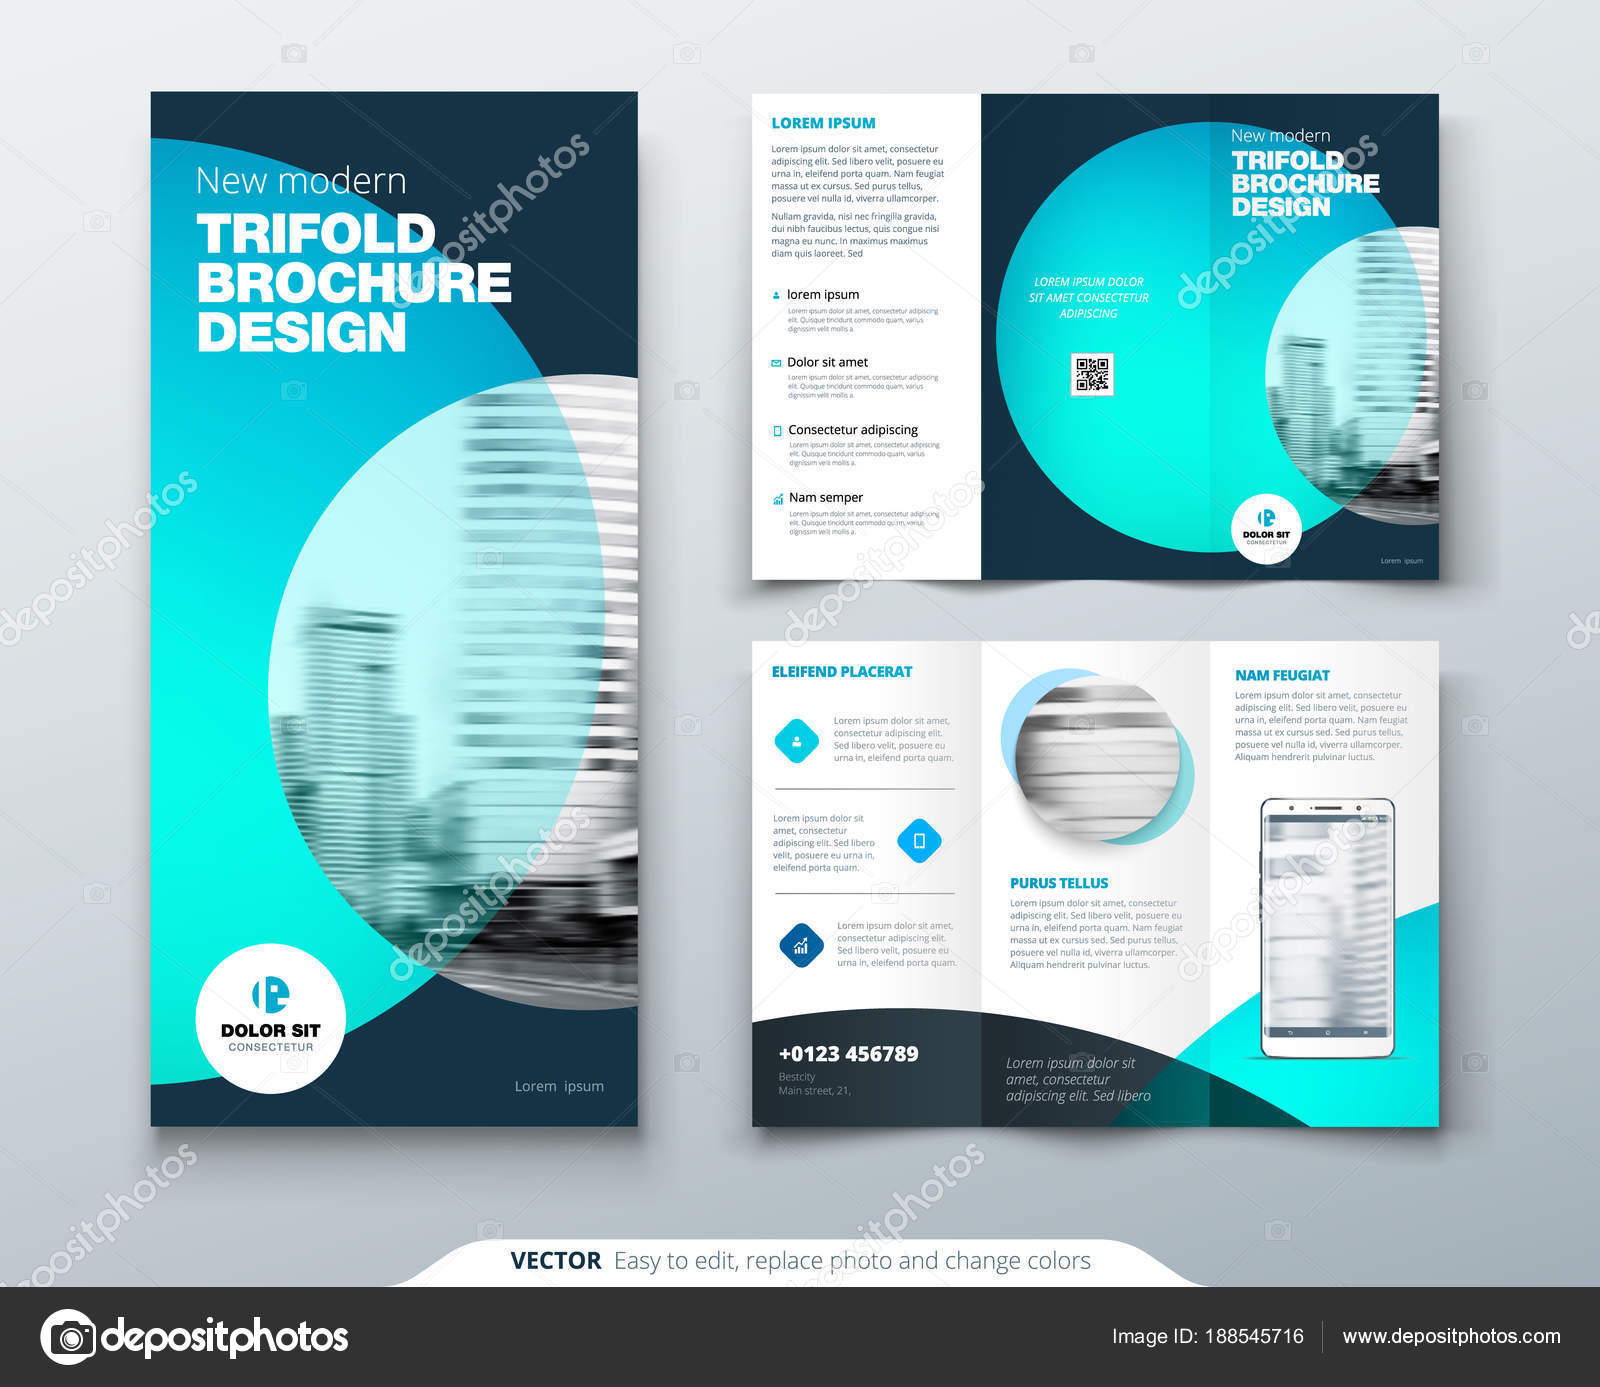 tri fold brochure design teal orange corporate business template